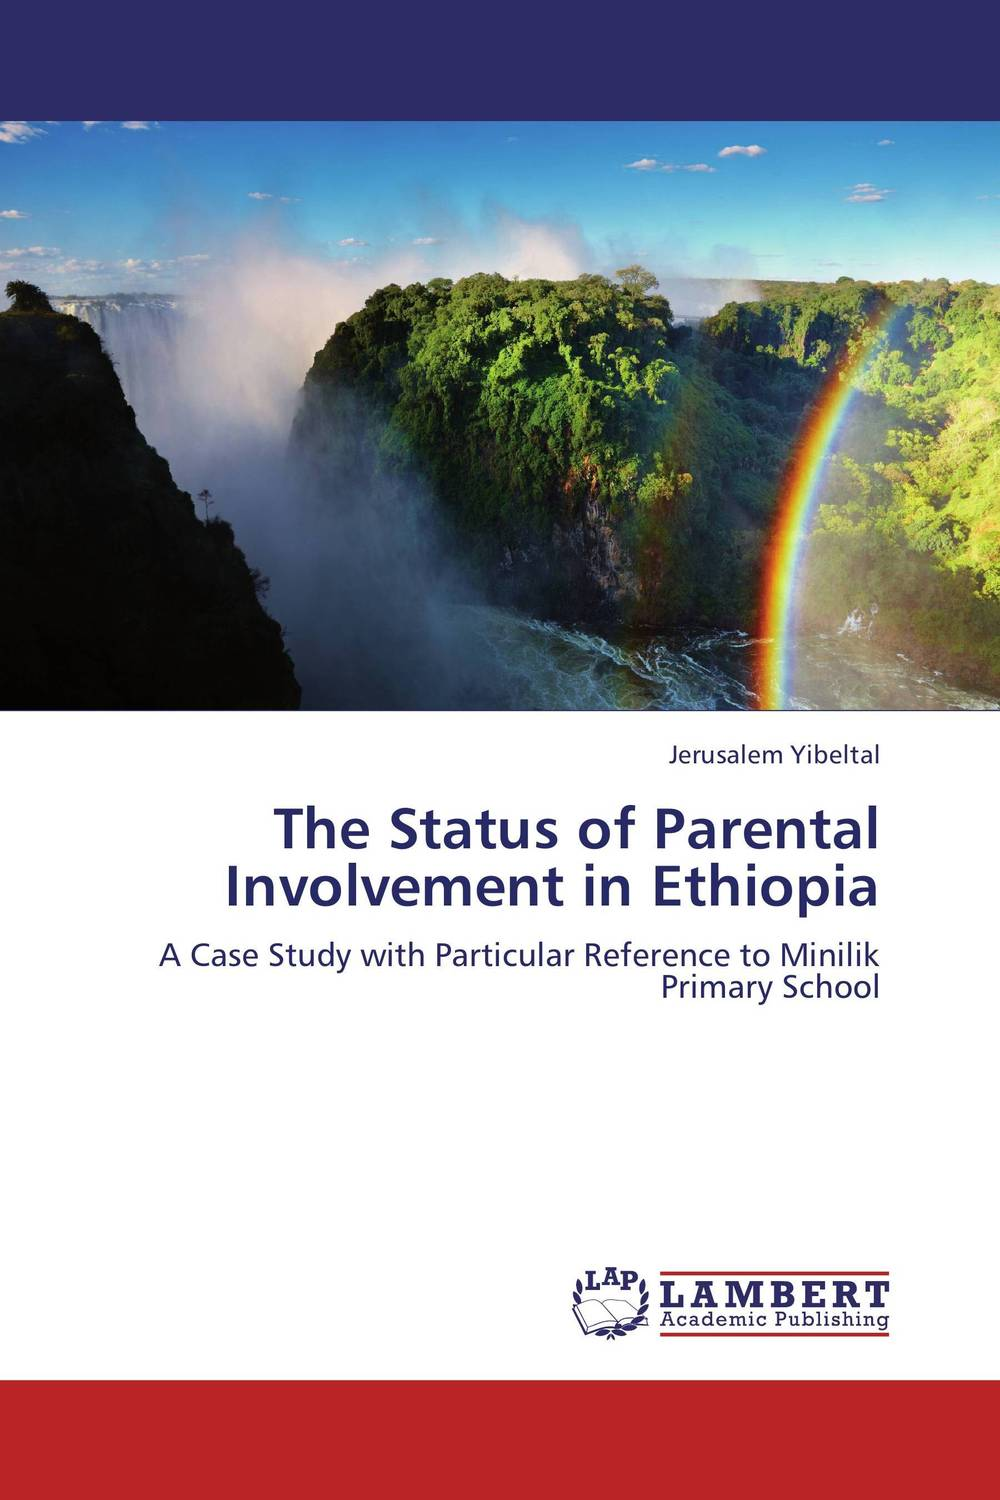 The Status of Parental Involvement in Ethiopia father's role in enhancing children's development